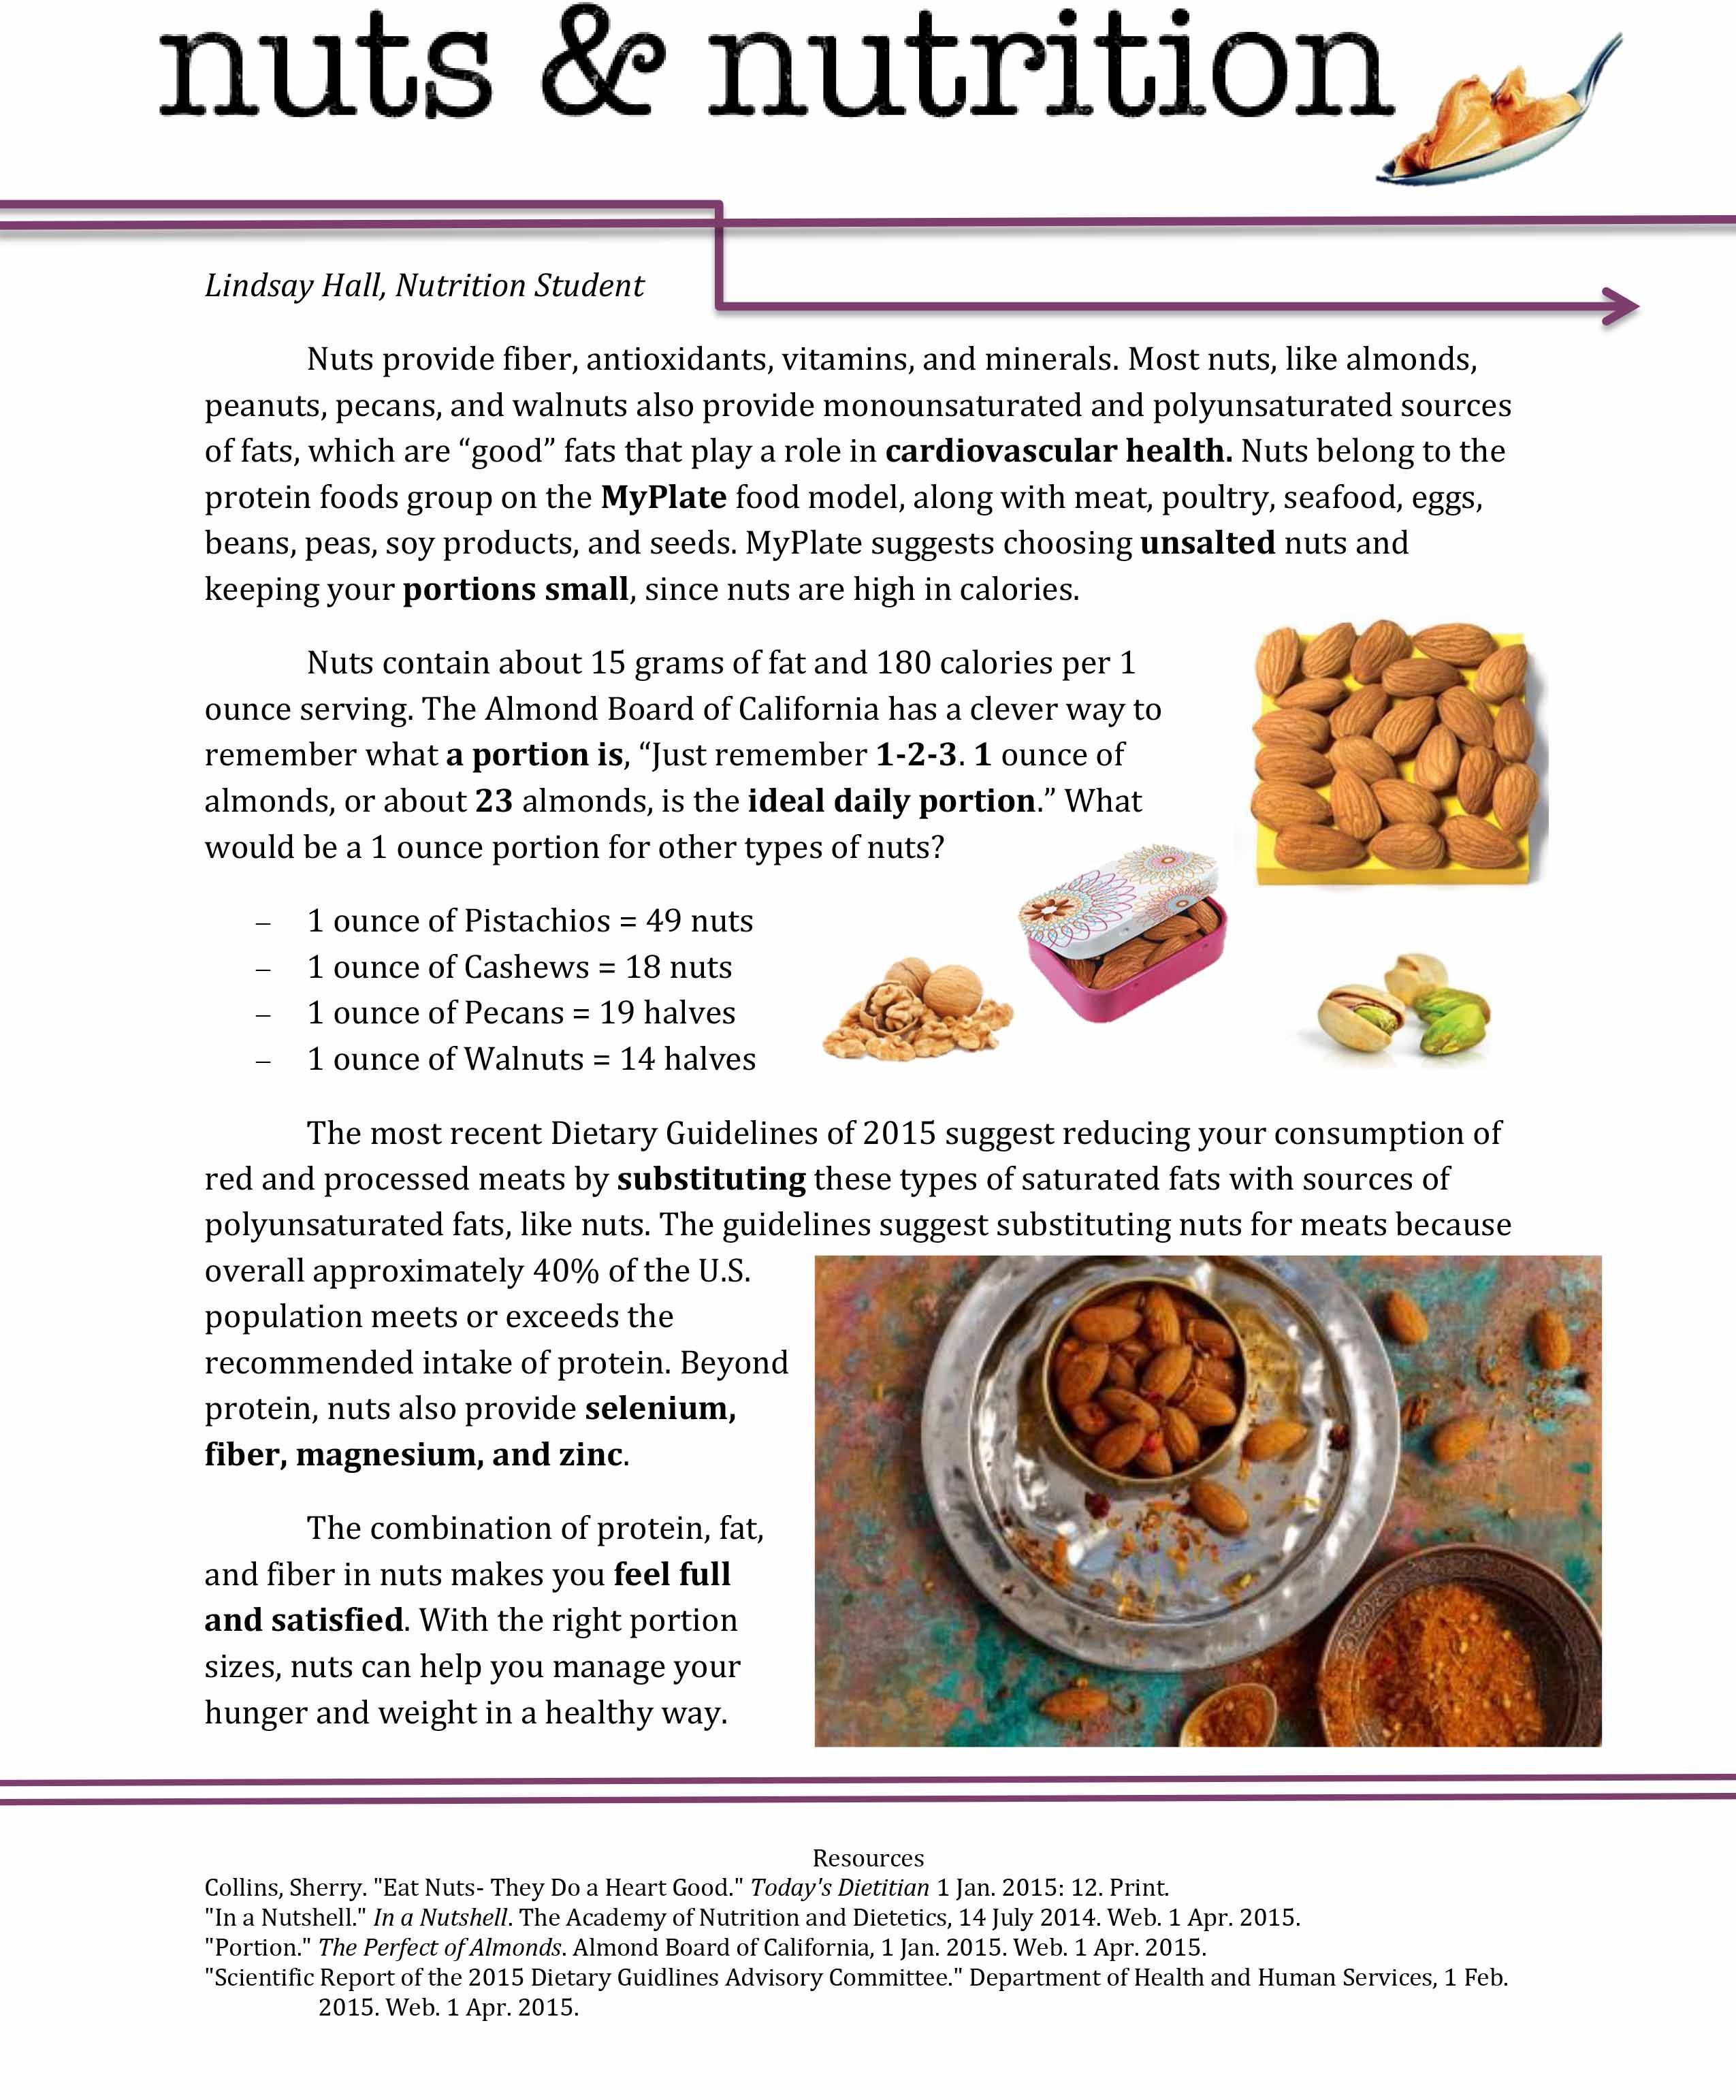 With the right portion sizes, nuts can help you manage your